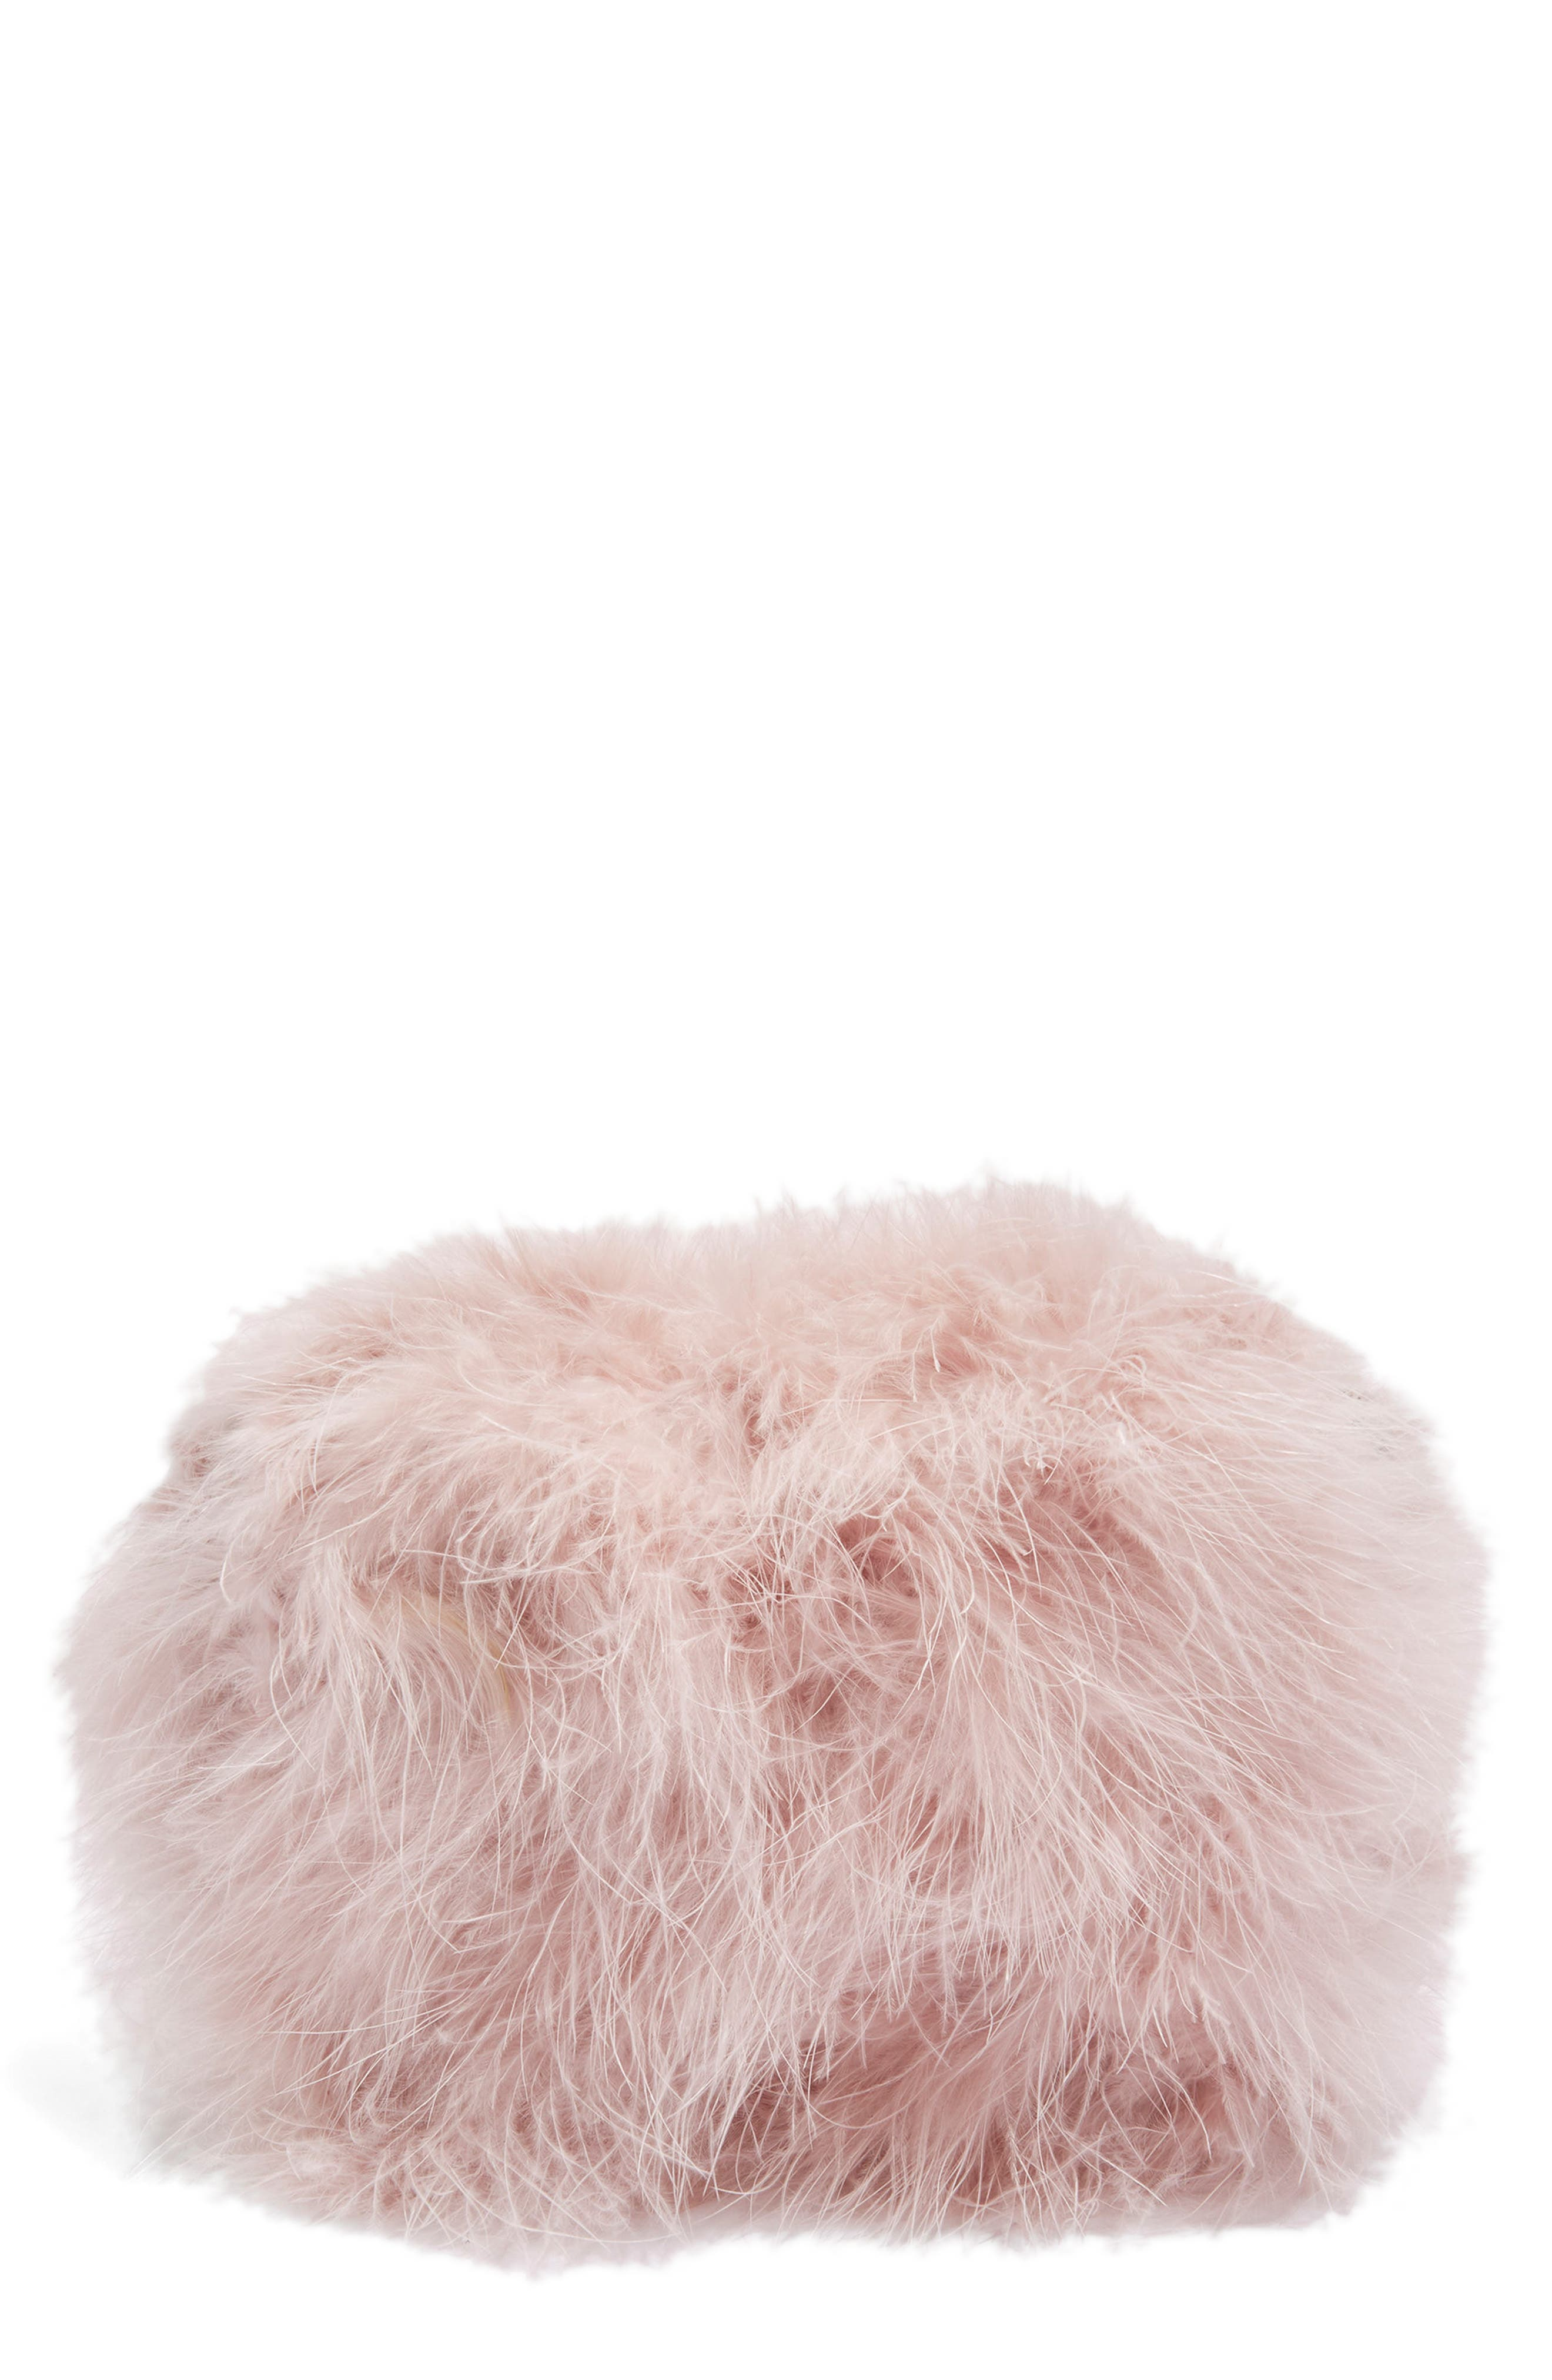 Alternate Image 1 Selected - Topshop Riga Feather Crossbody Bag